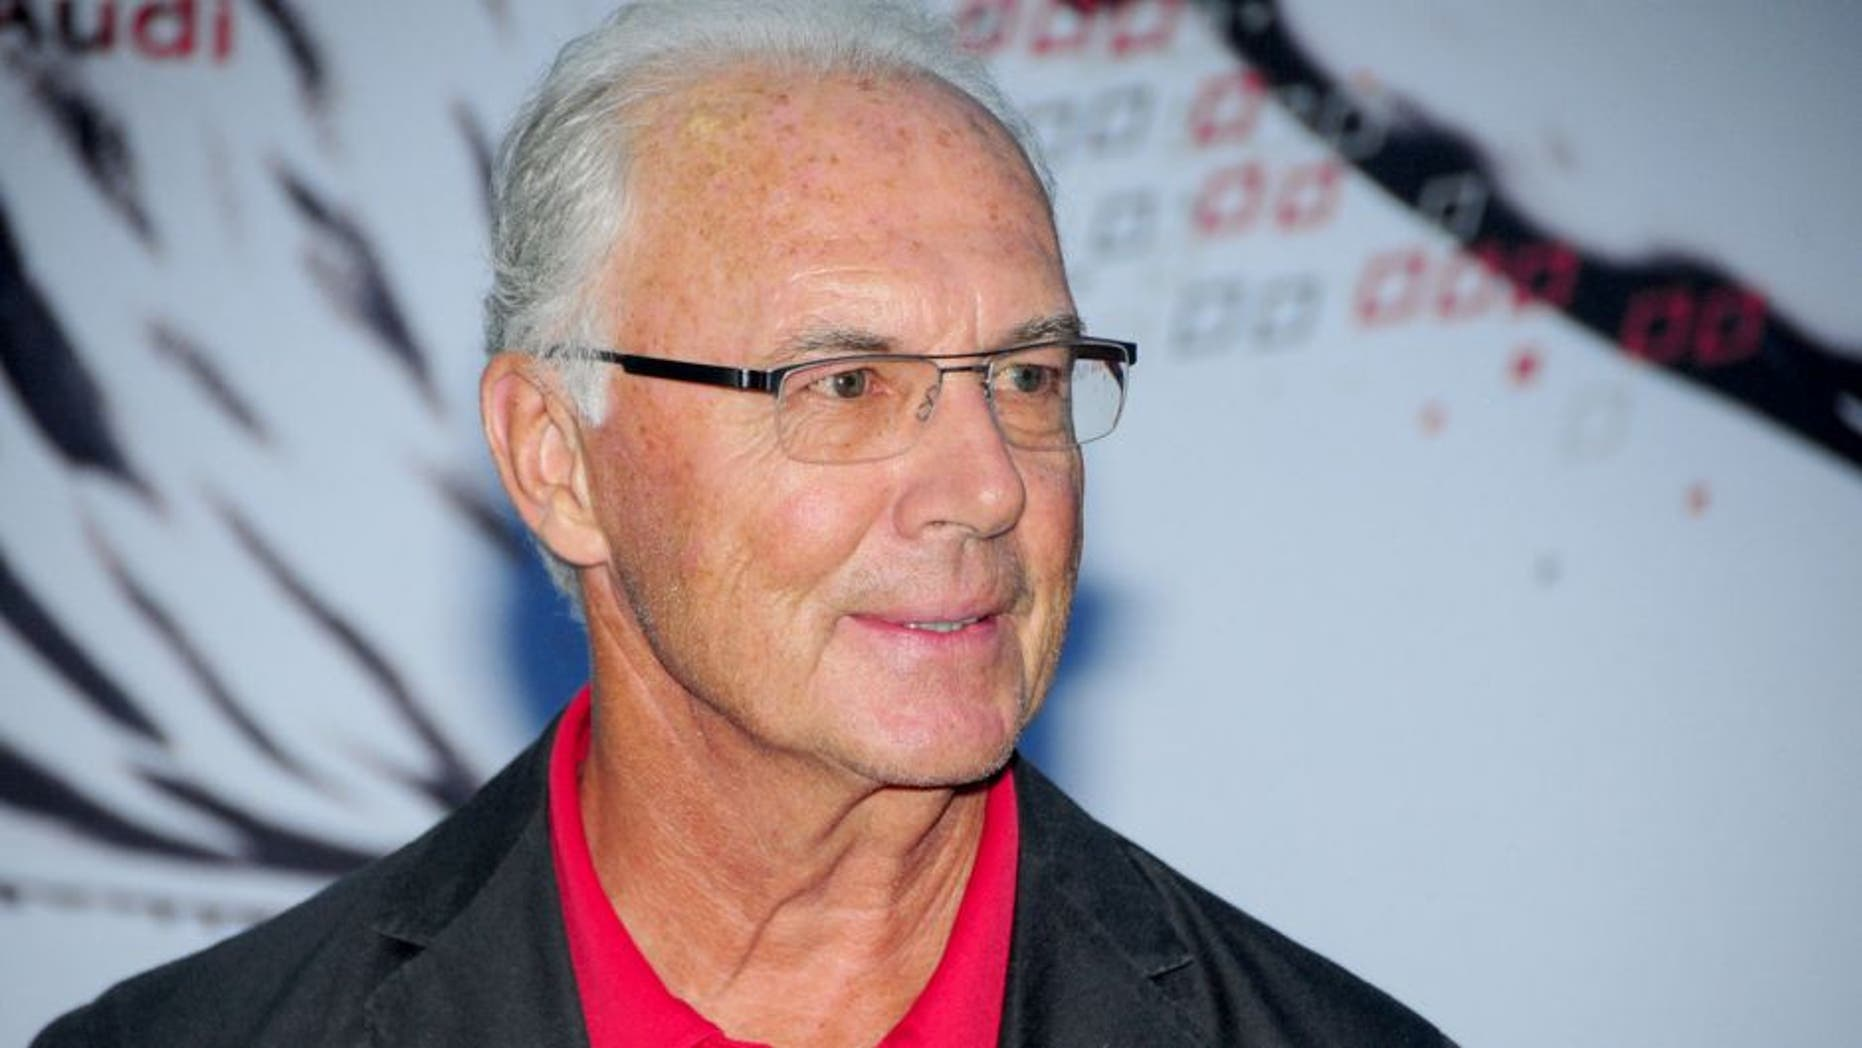 """SHANGHAI, CHINA - JULY 19: (CHINA OUT) Franz Beckenbauer, Germany's popular soccer player, coach and manager ever, known as the """"Kaiser"""", visits Youth Training Camp during Audi Summer Tour China 2015 on July 19, 2015 in Shanghai, China. (Photo by ChinaFotoPress/ChinaFotoPress via Getty Images)"""